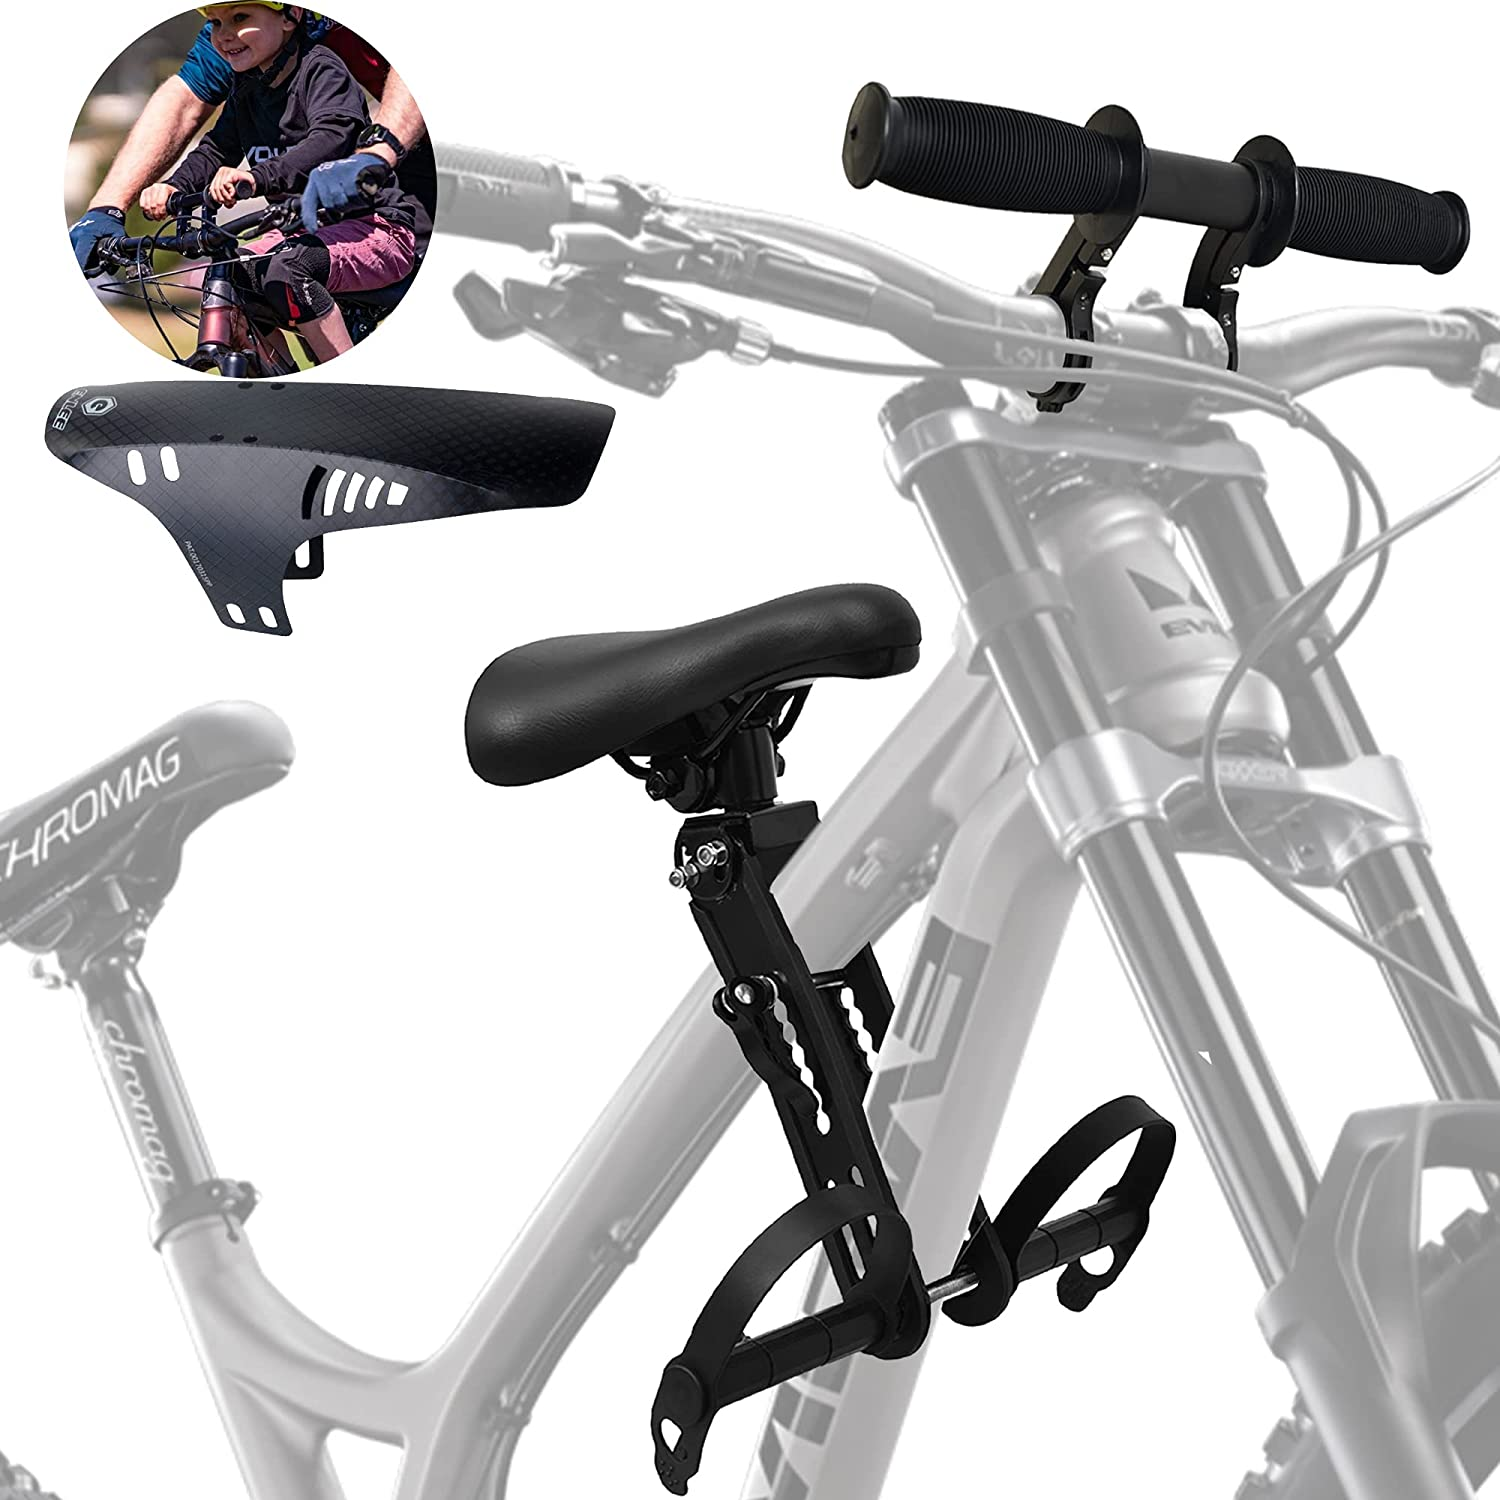 PROLEE Kids Bike Seat for Mountain Bikes with Handlebar Attachment and Mudguard, Detachable Front Mounted Child Bicycle Seats Suitable for All Bicycles, 1 Year Warranty